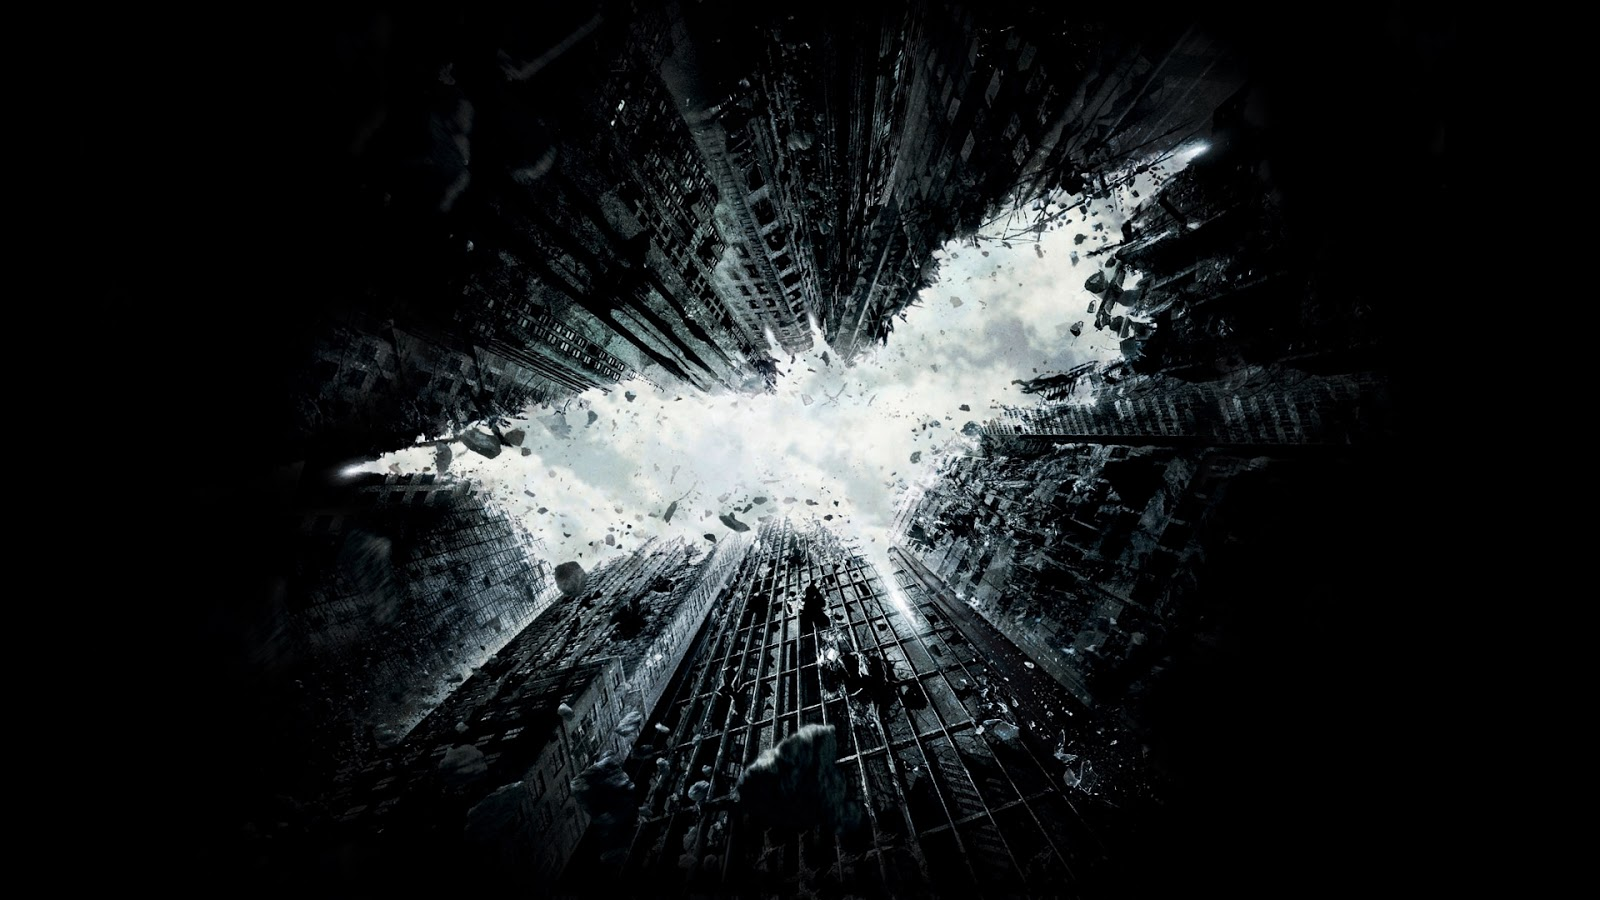 Batman the dark knight rises movie 2011 2012 buildings ruined game hd